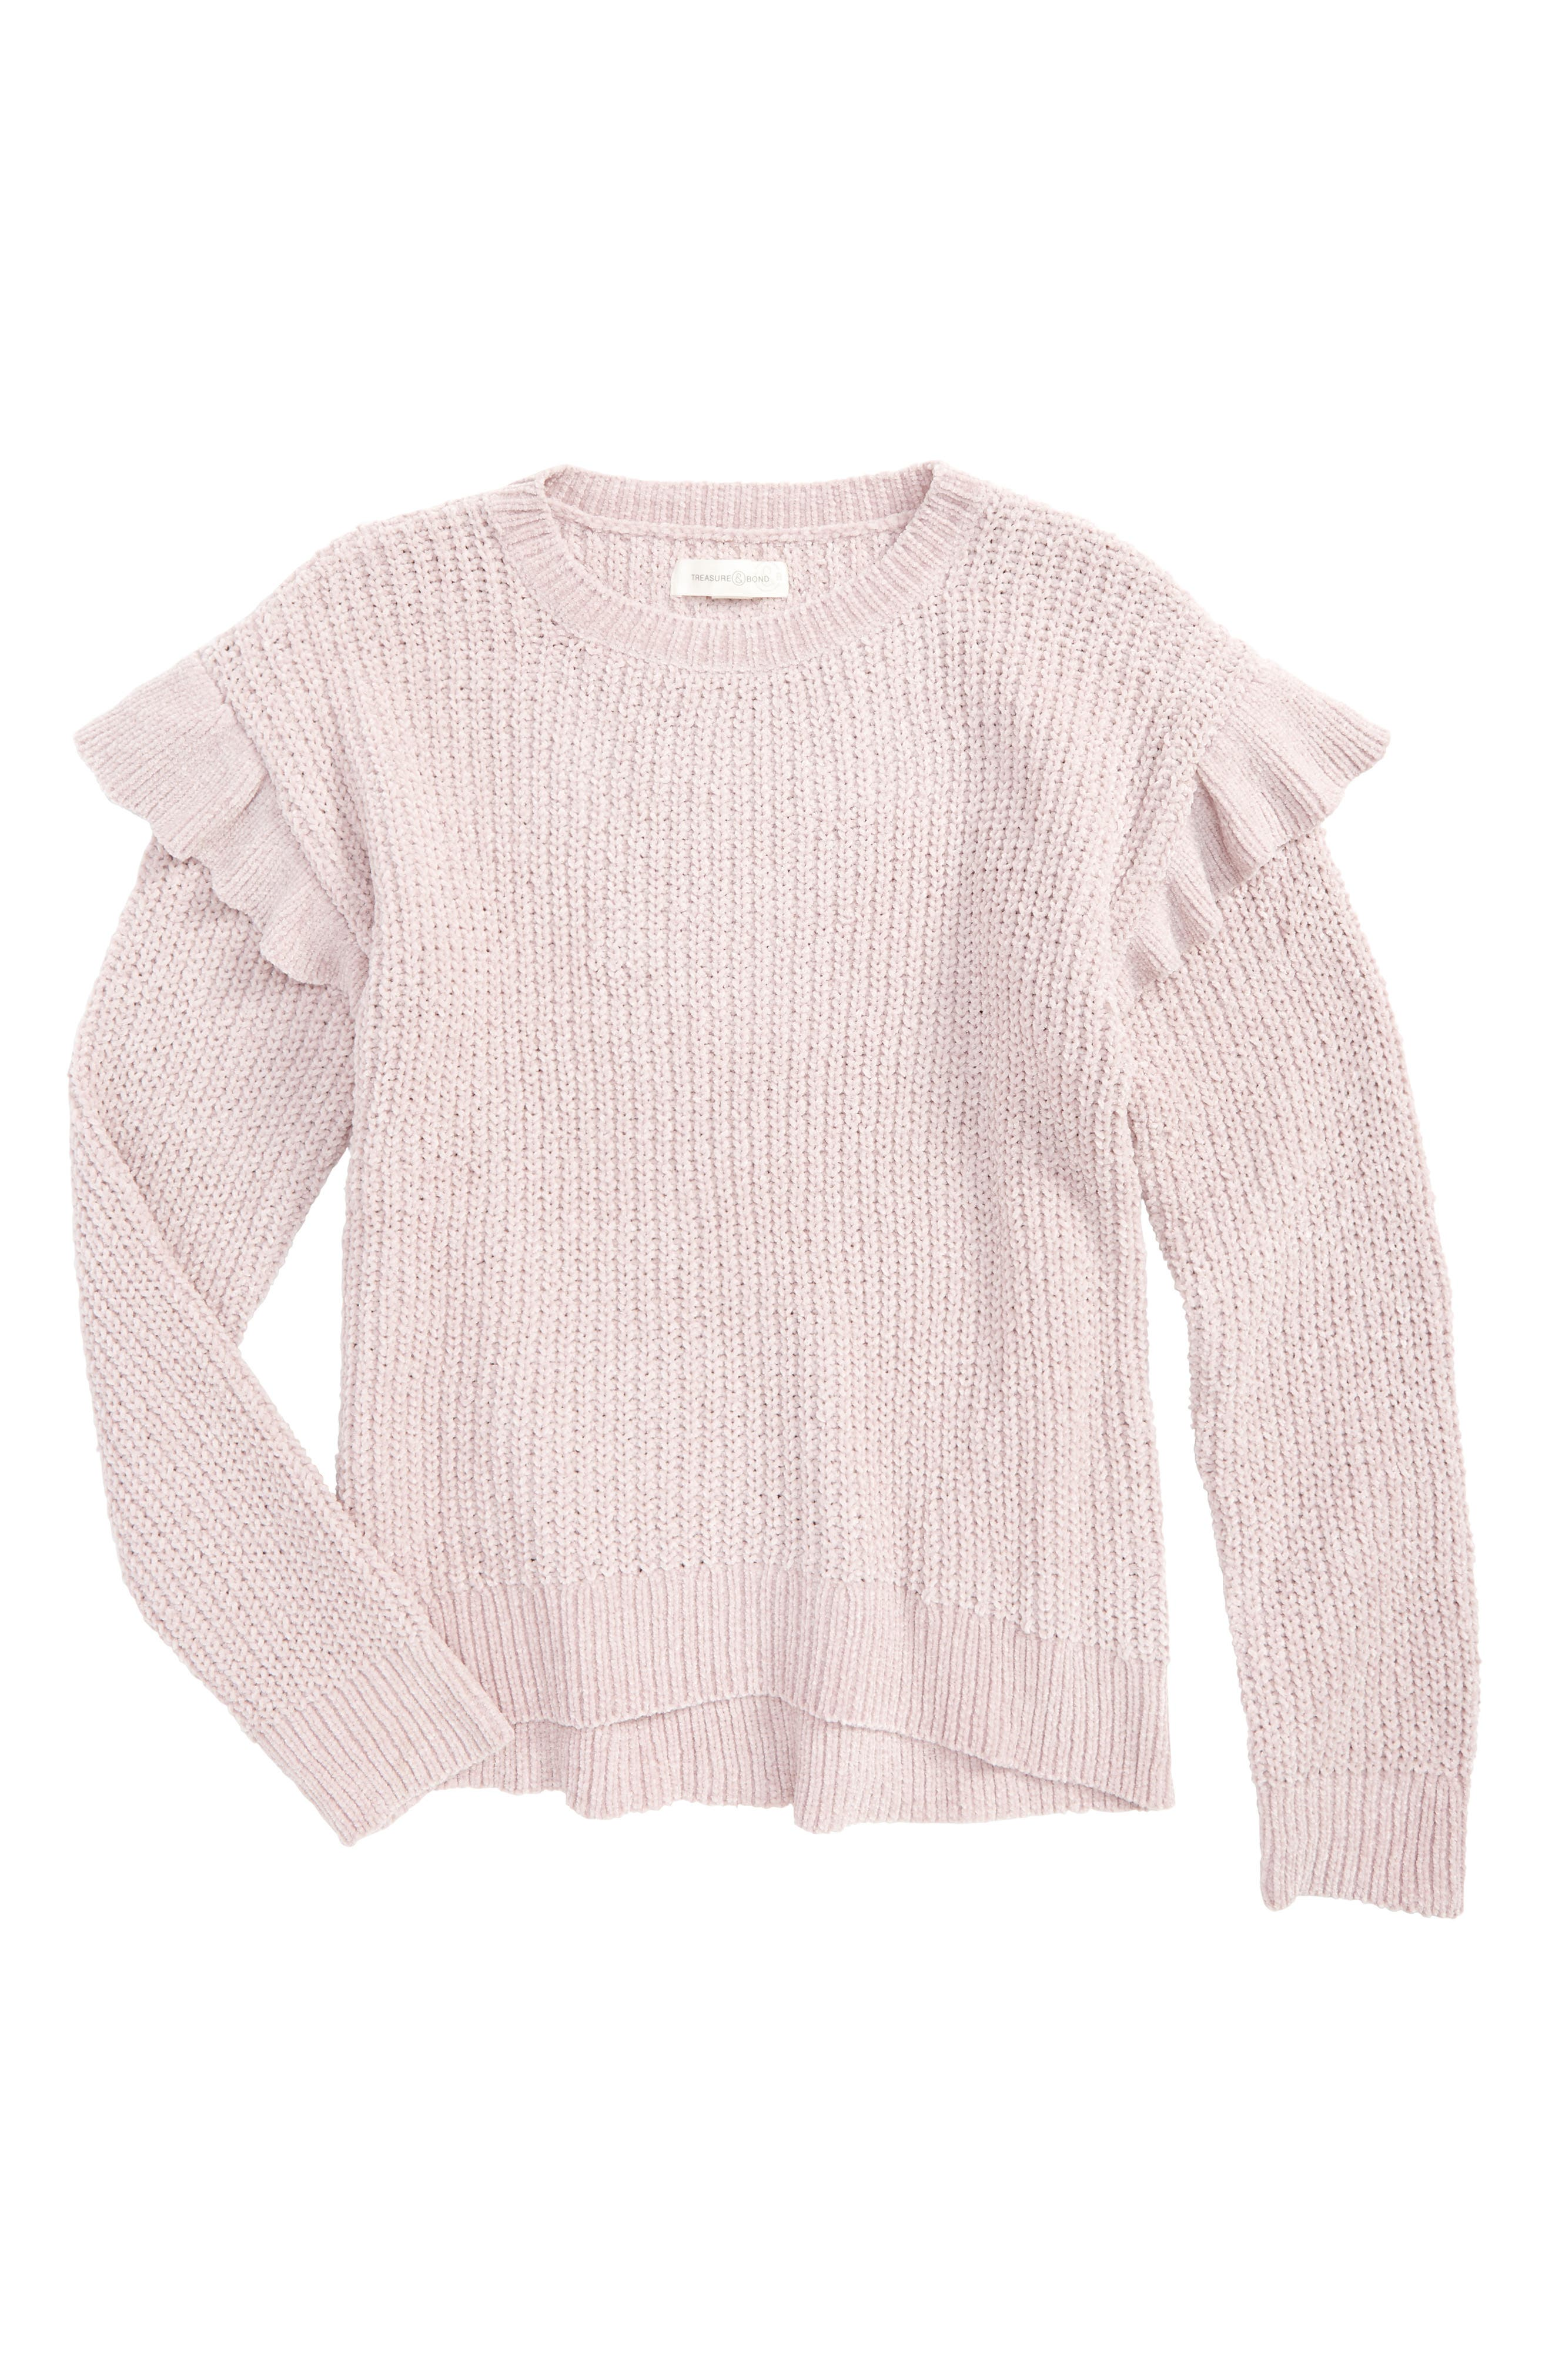 Ruffle Sweater,                             Main thumbnail 1, color,